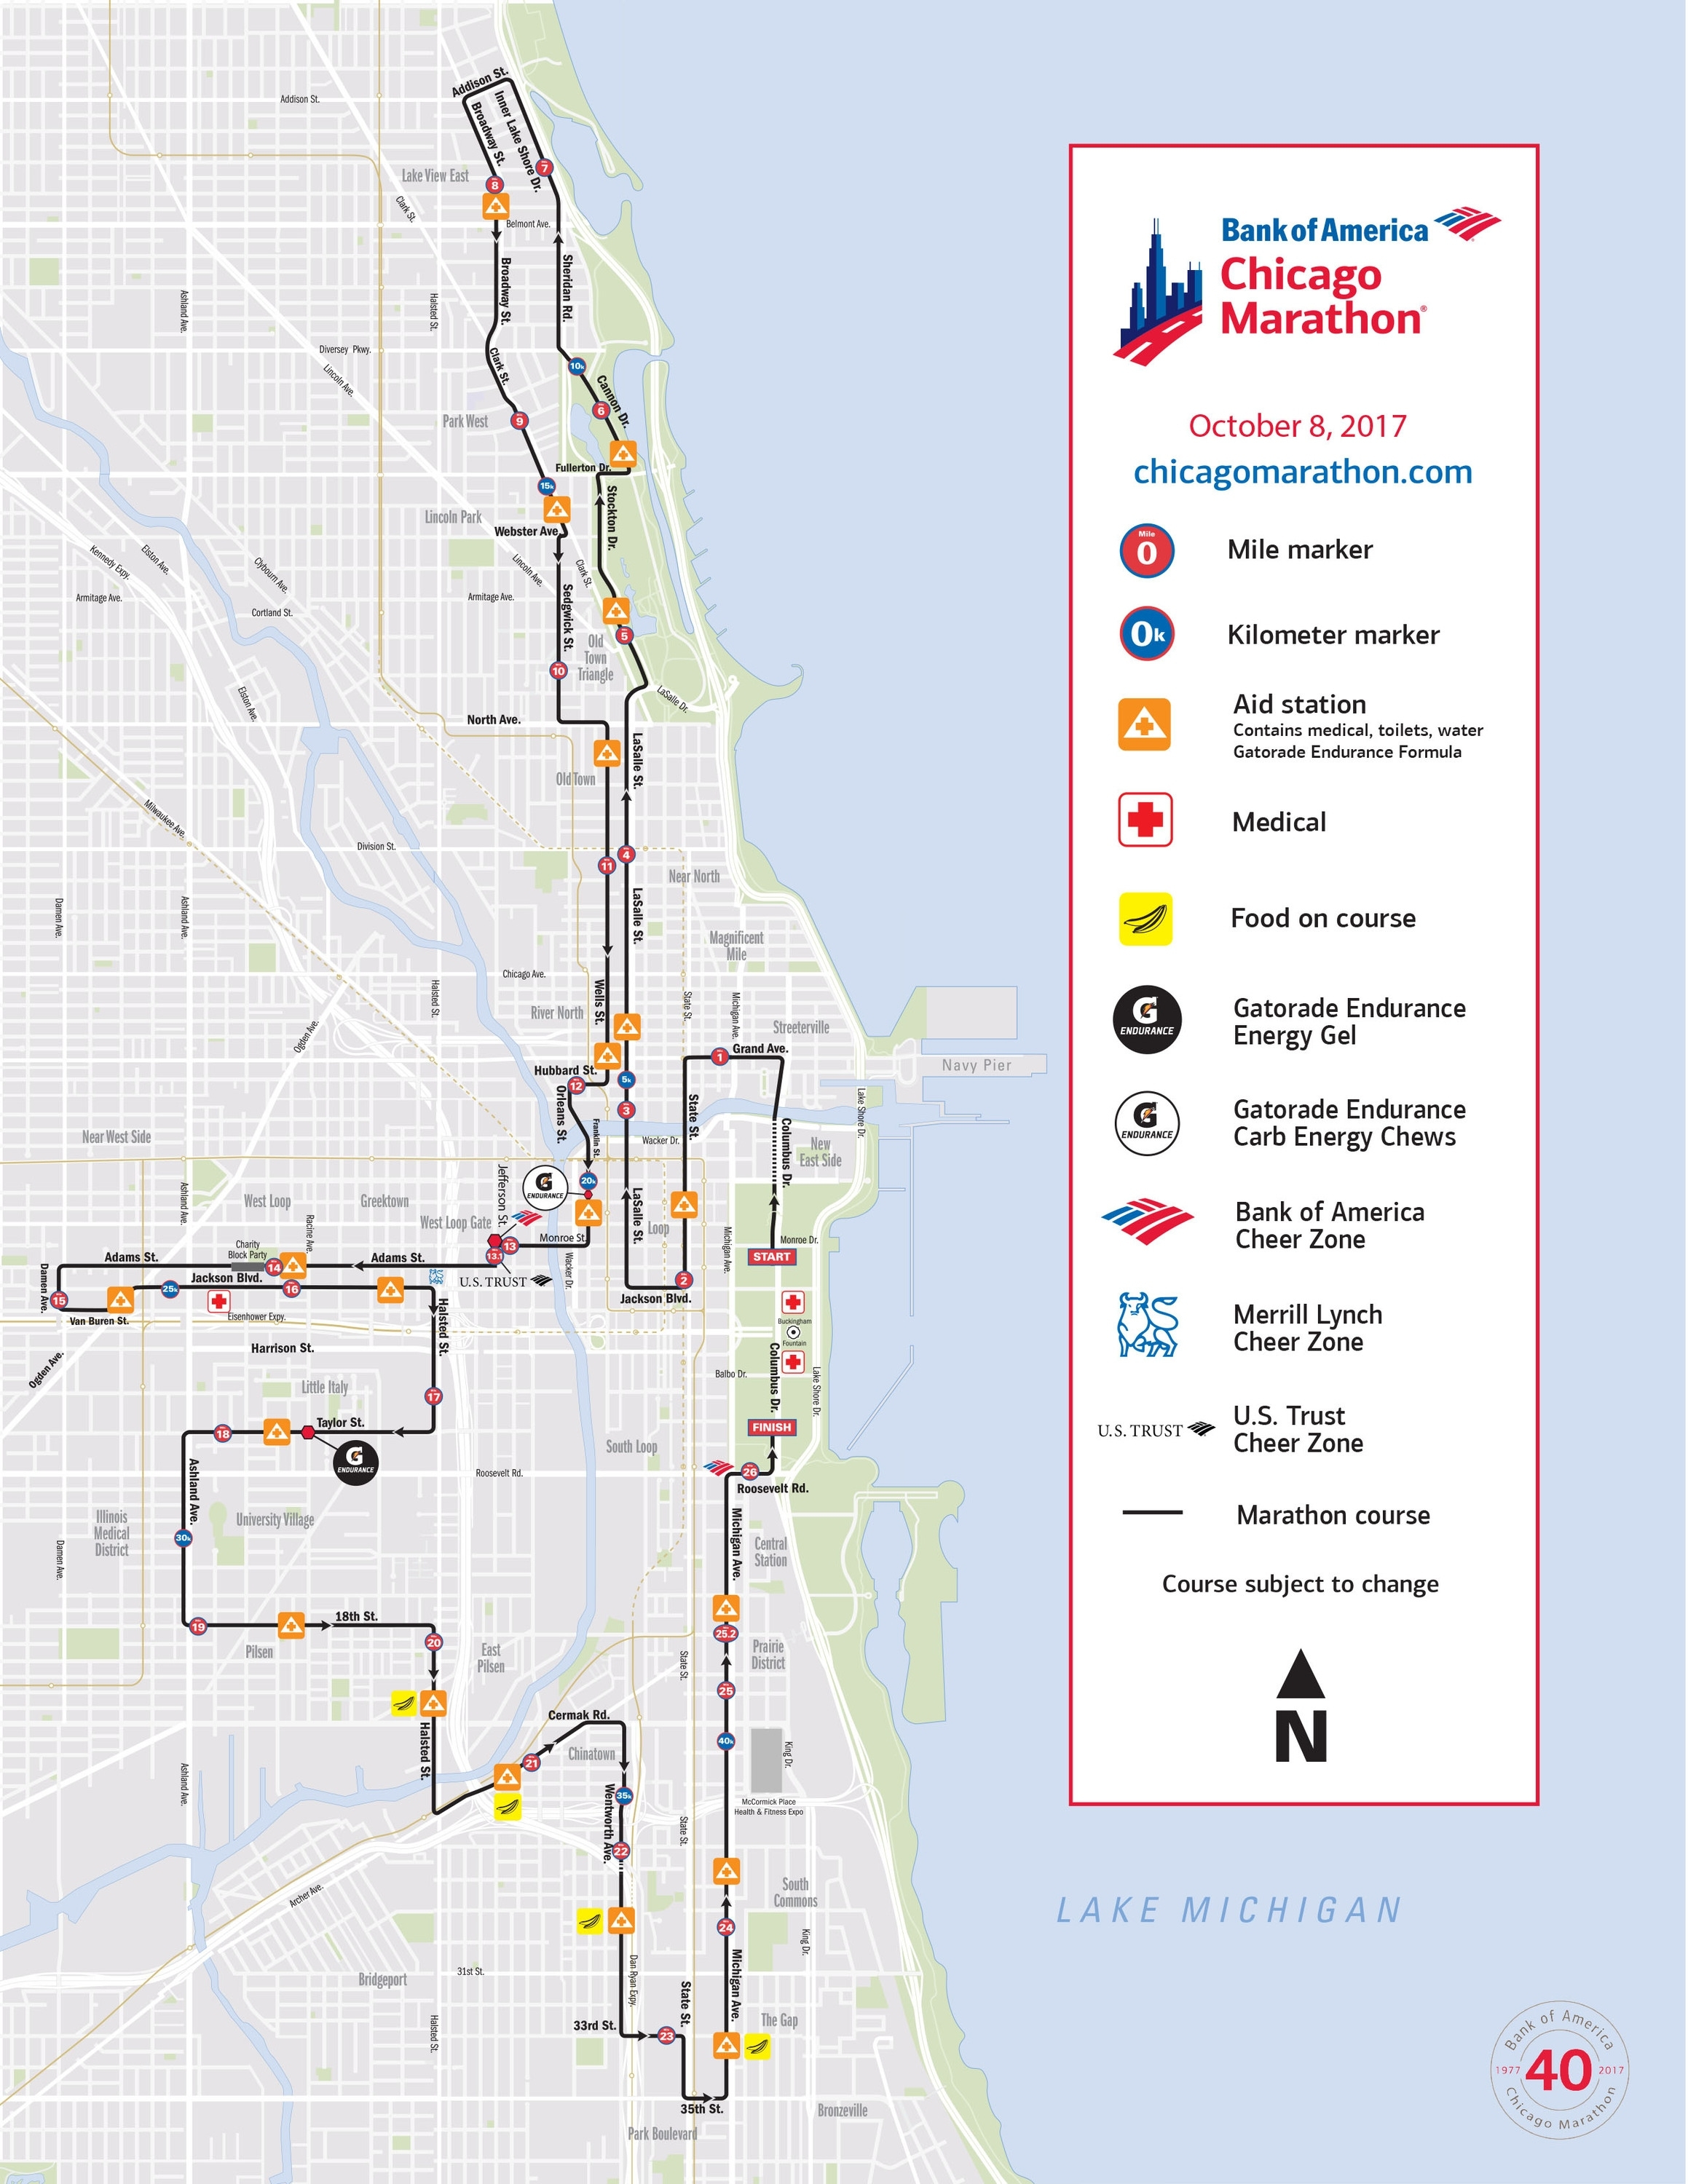 Chicago Marathon 2017: Here's What You Need To Know within Chicago Marathon Google Map